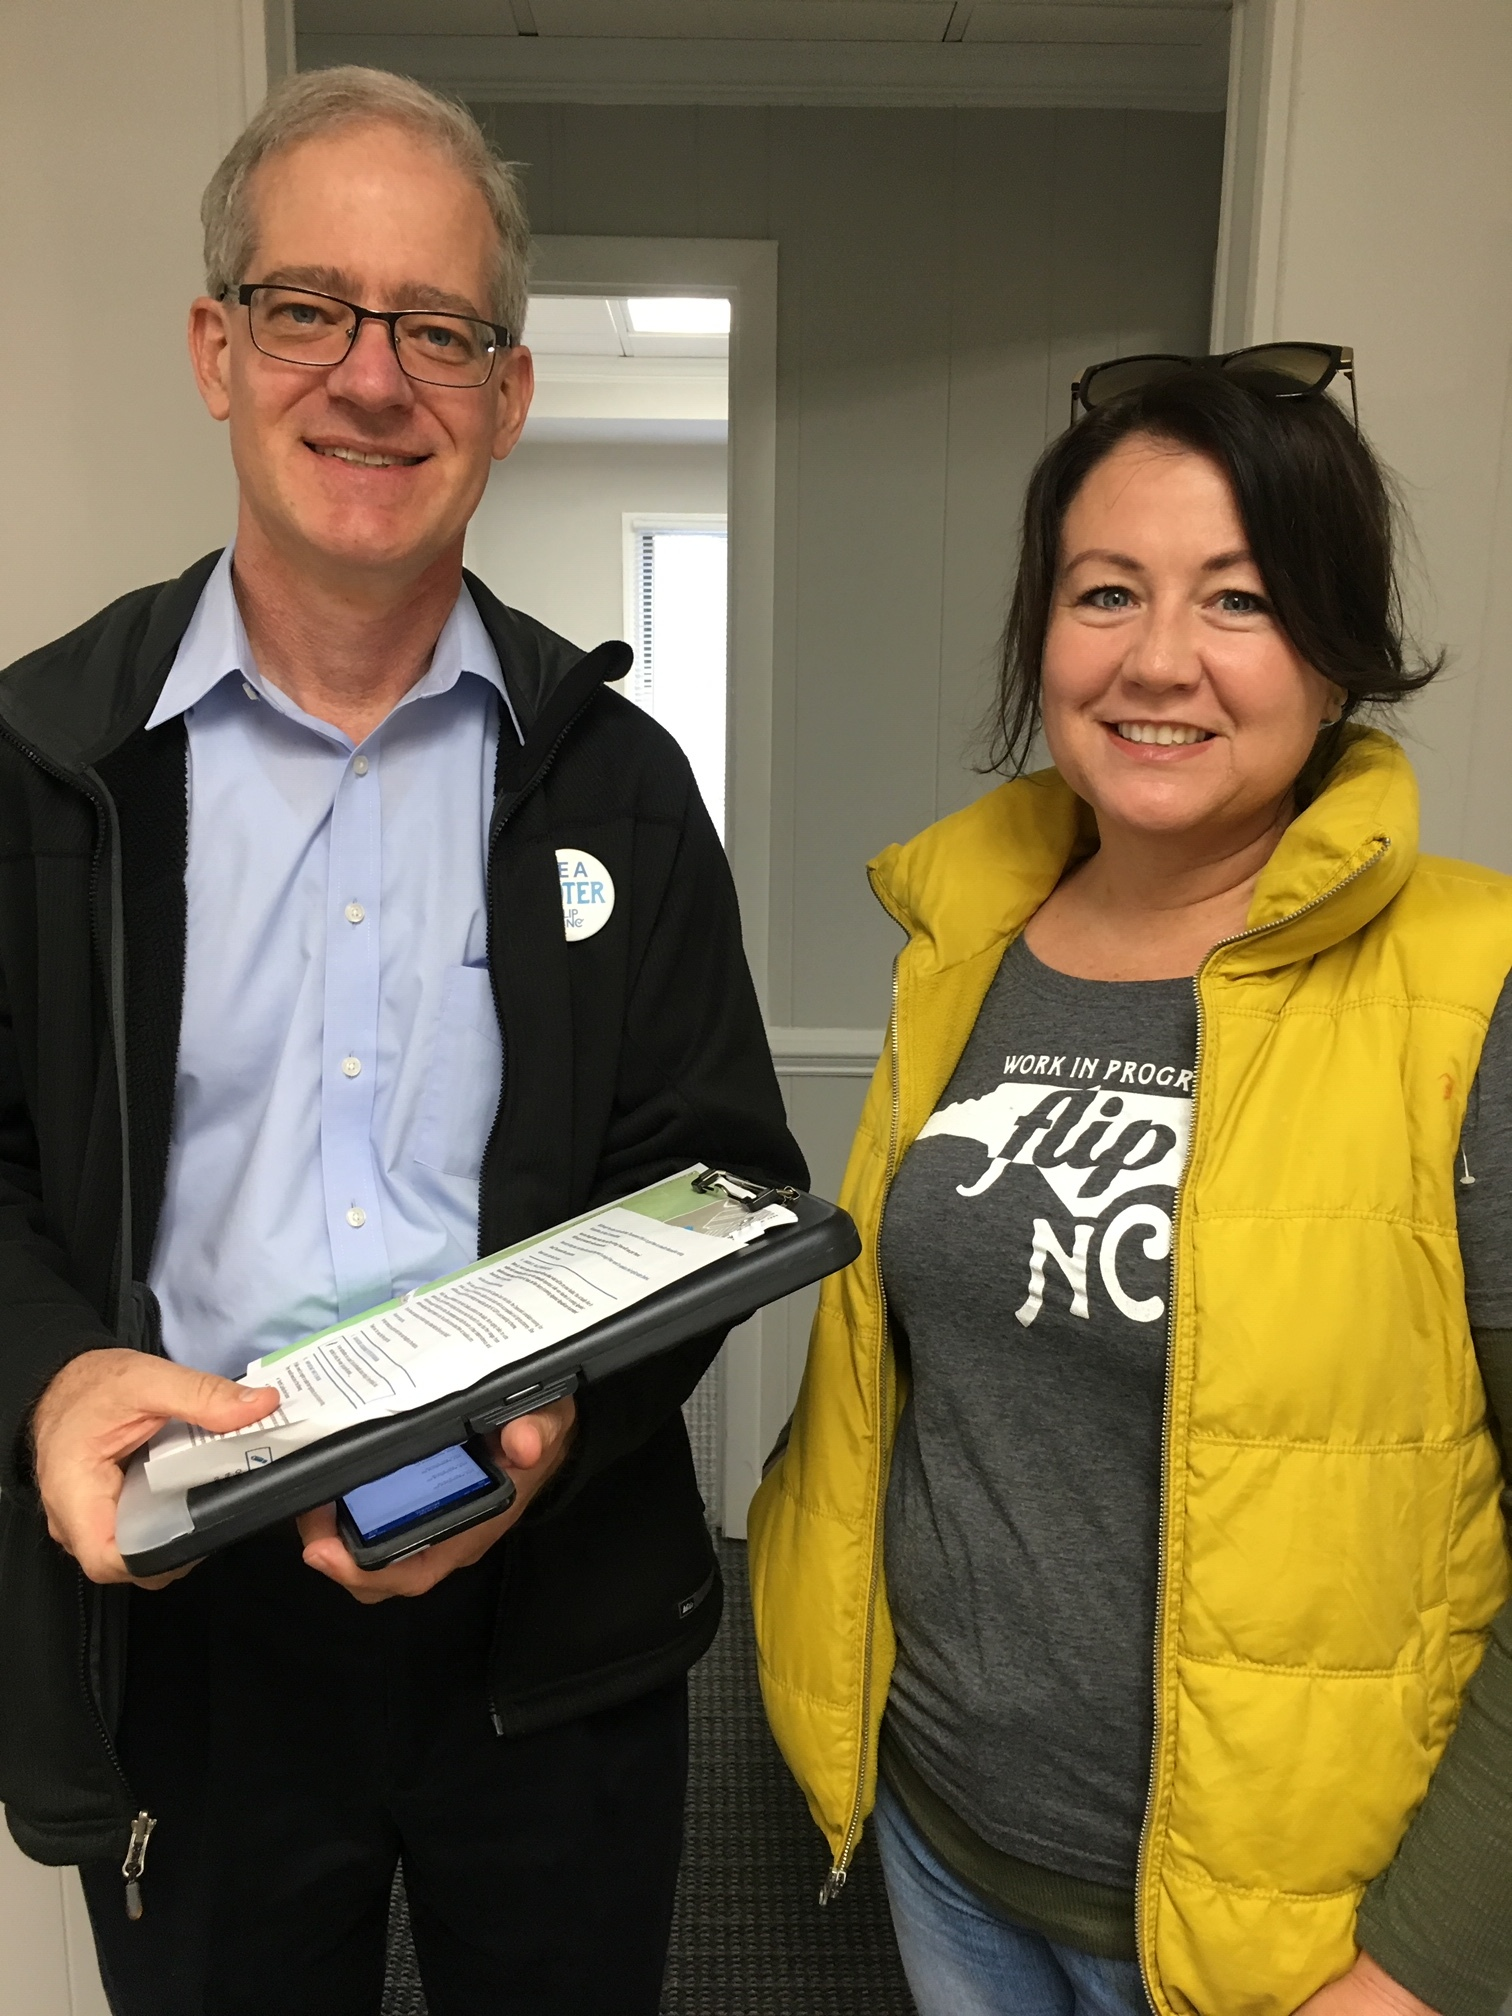 Katy, with her canvassing partner at a FLIP NC canvass last fall